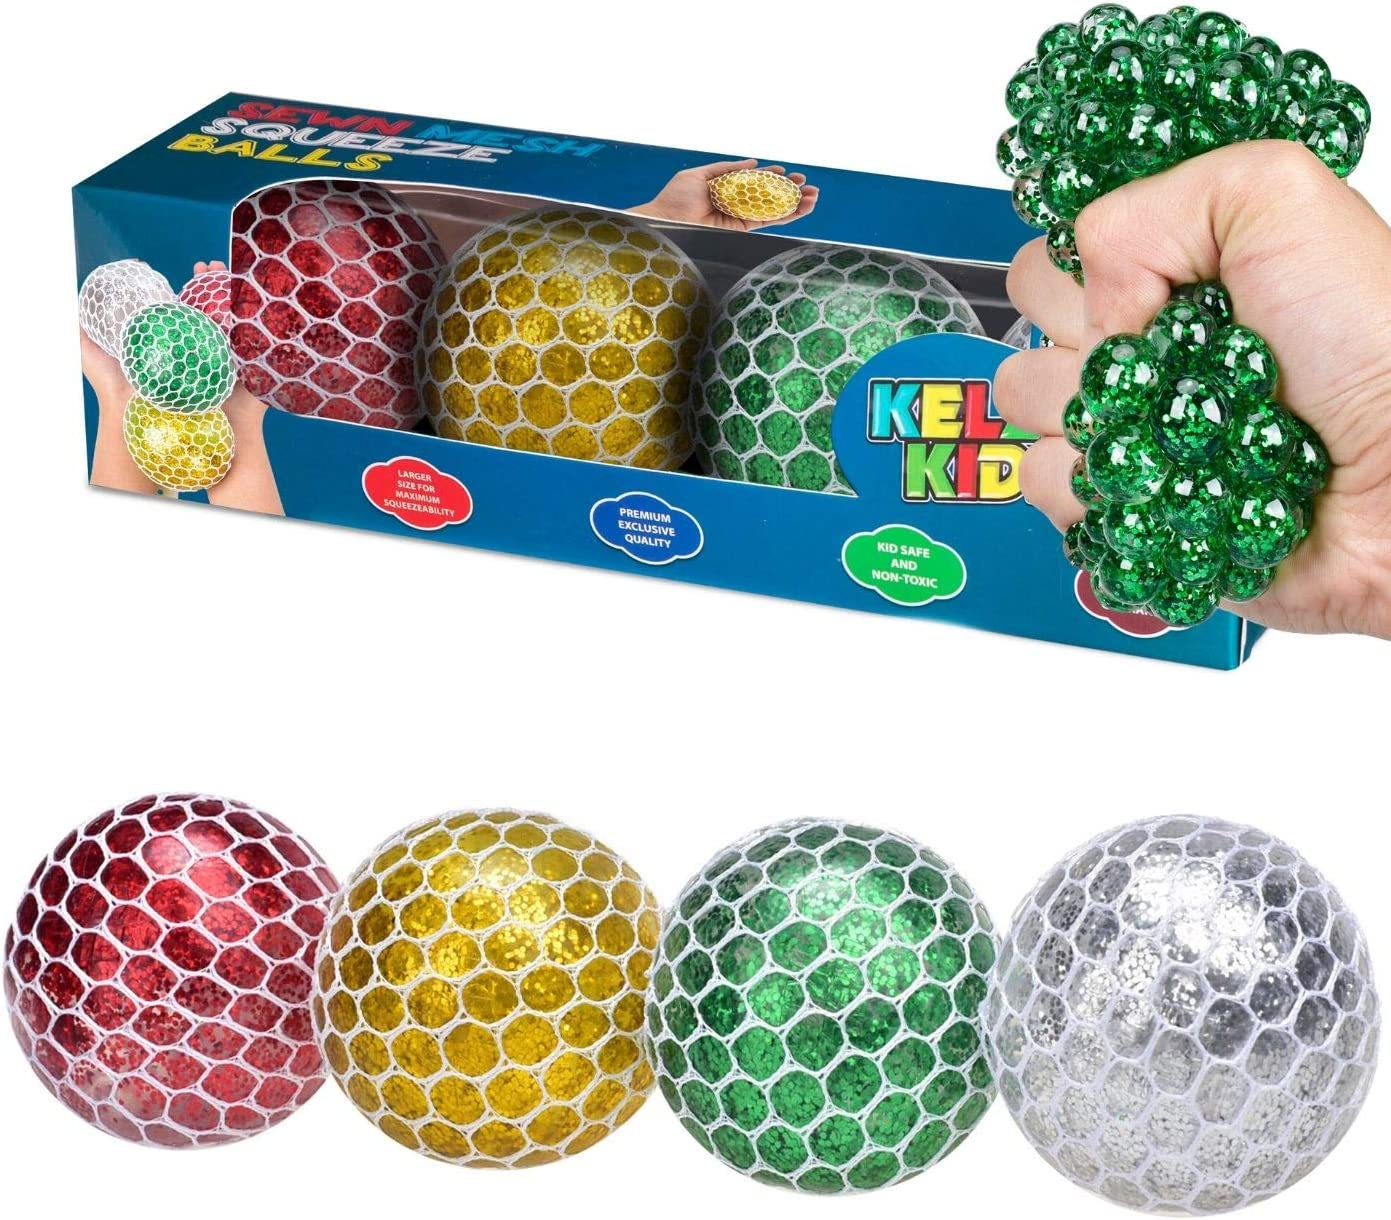 KELZ KIDZ Light Up Sewn Mesh Squishy Grape Ball for Kids - Great Fun Squeeze Stress and Fidget Toy for Adults and Children (Pack of 4)